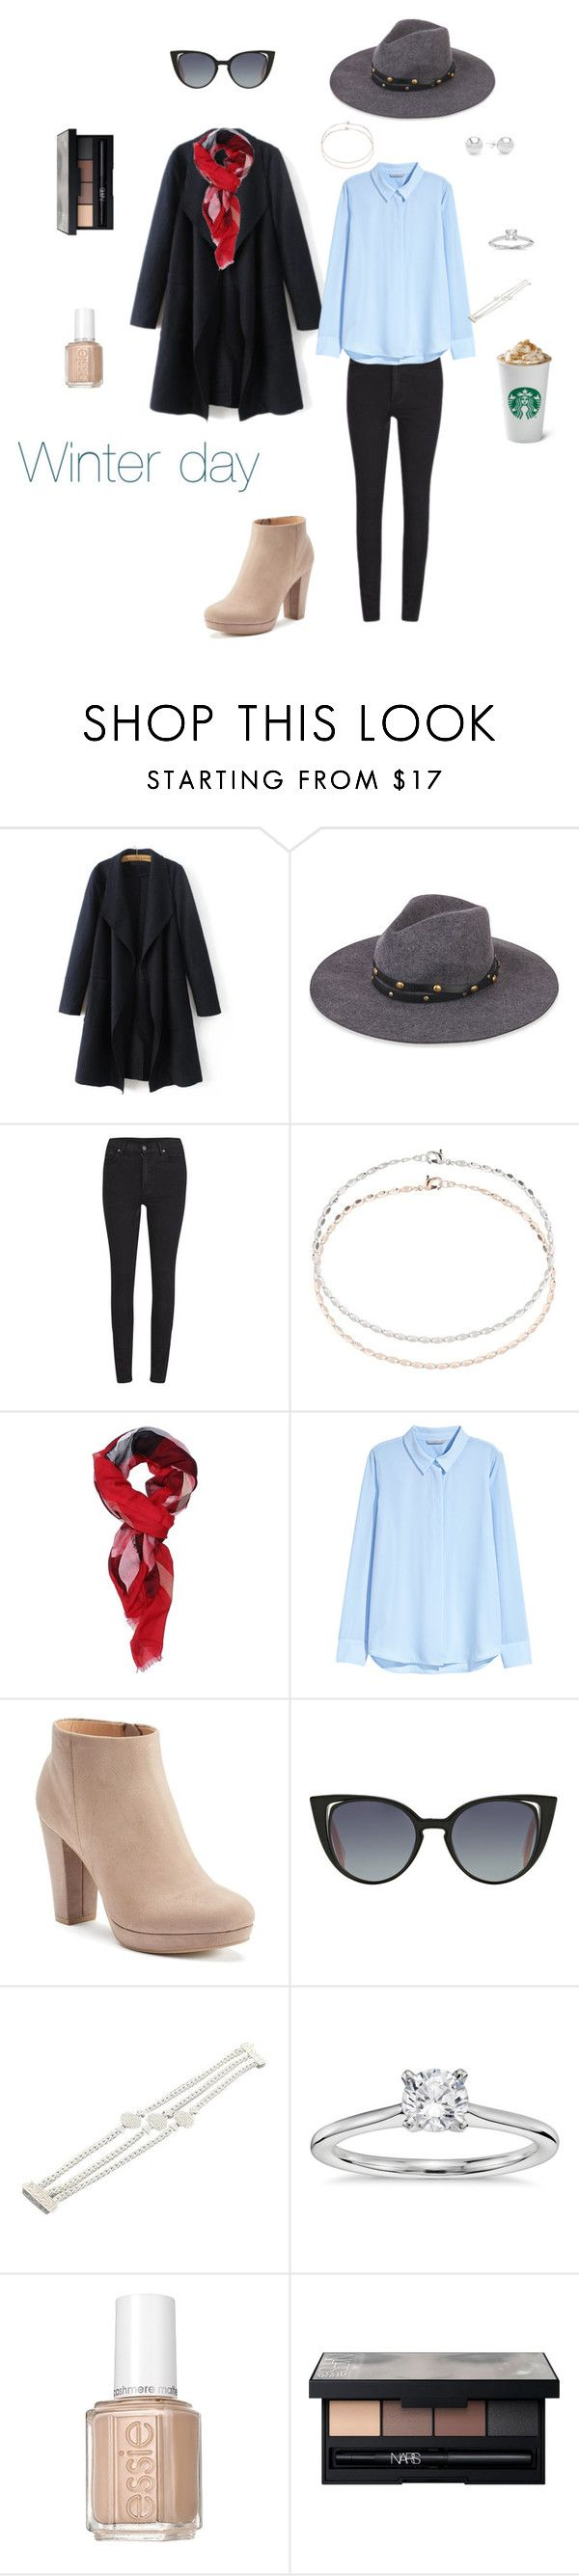 """Daily look : winter day ❄️"" by marion4421 ❤ liked on Polyvore featuring Sensi Studio, Cheap Monday, Miss Selfridge, Burberry, H&M, LC Lauren Conrad, Fendi, John Hardy, Blue Nile and Essie"